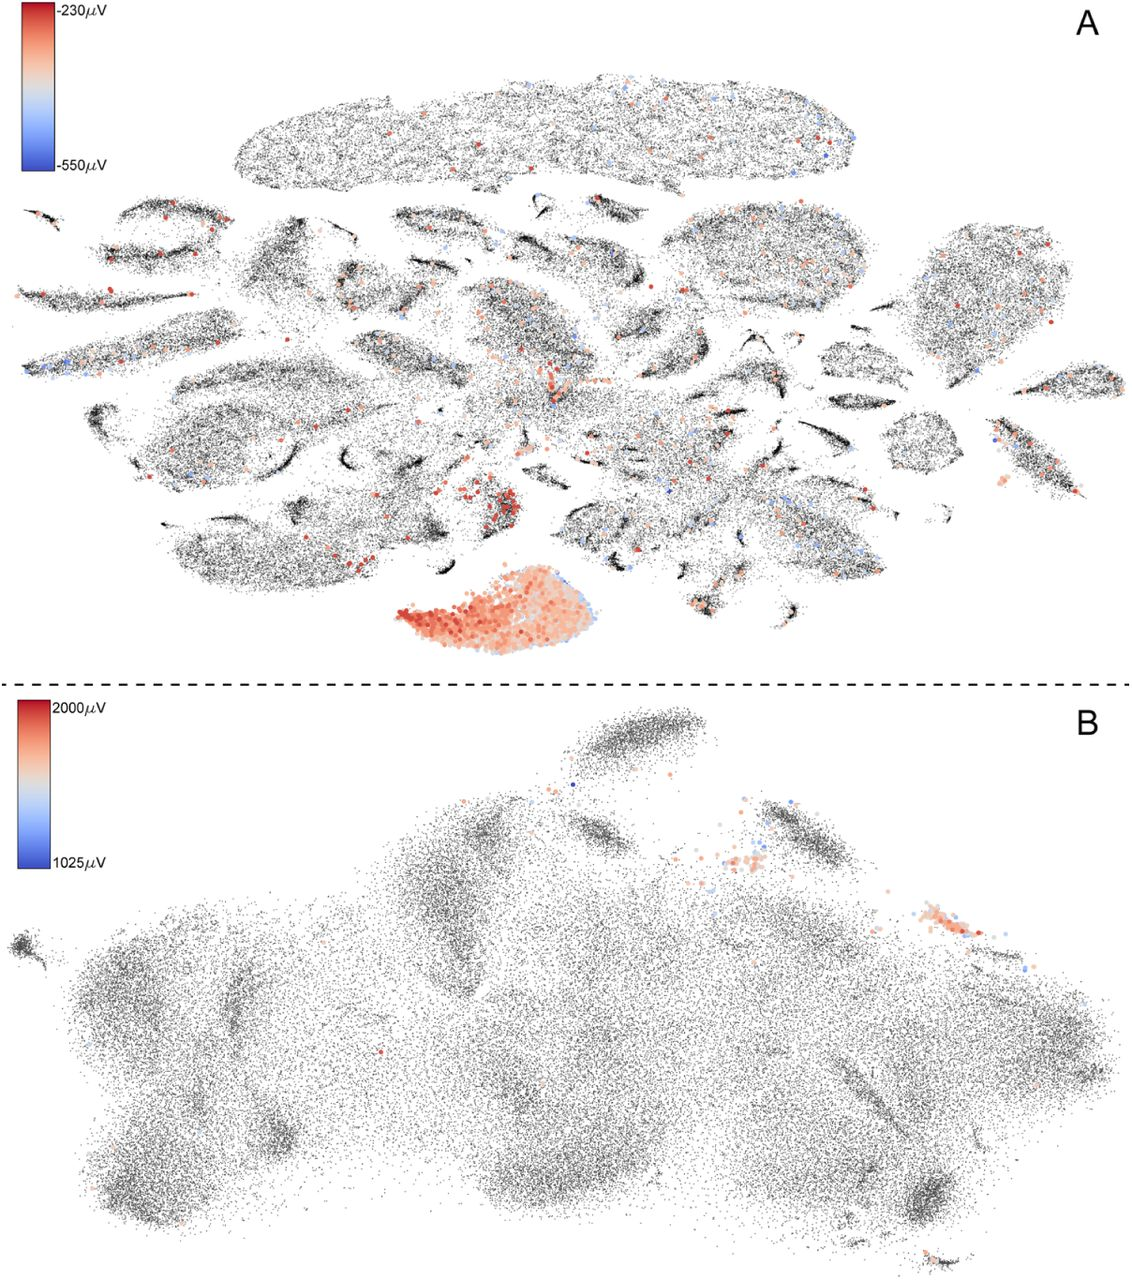 T-SNE visualization of large-scale neural recordings | bioRxiv